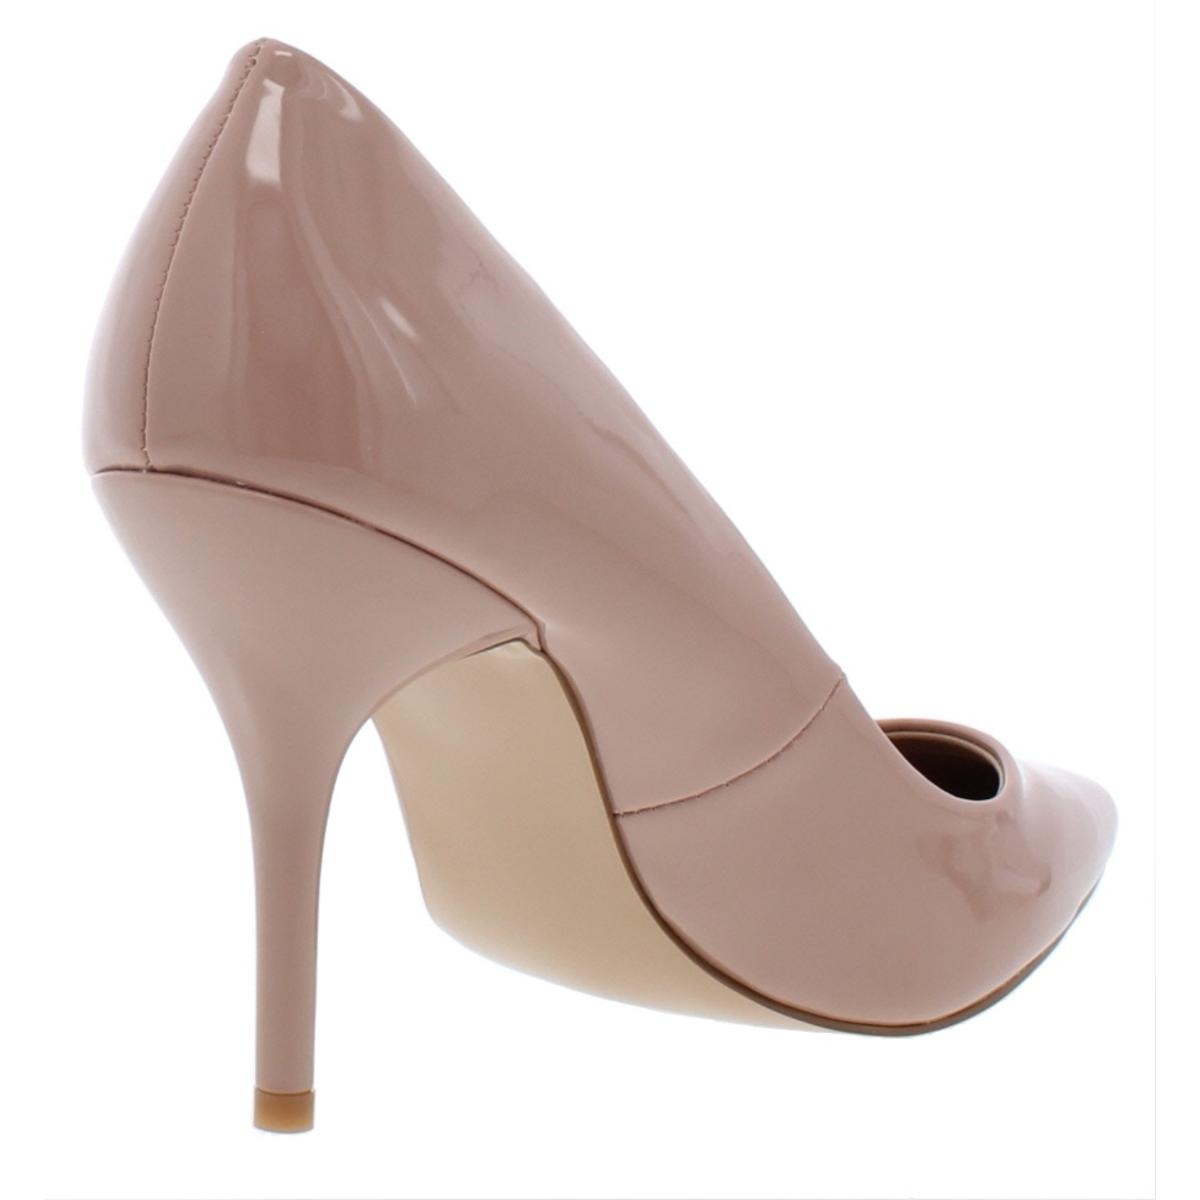 Steve-Madden-Womens-Selene-Patent-Stiletto-Evening-Dress-Heels-Shoes-BHFO-1619 thumbnail 6